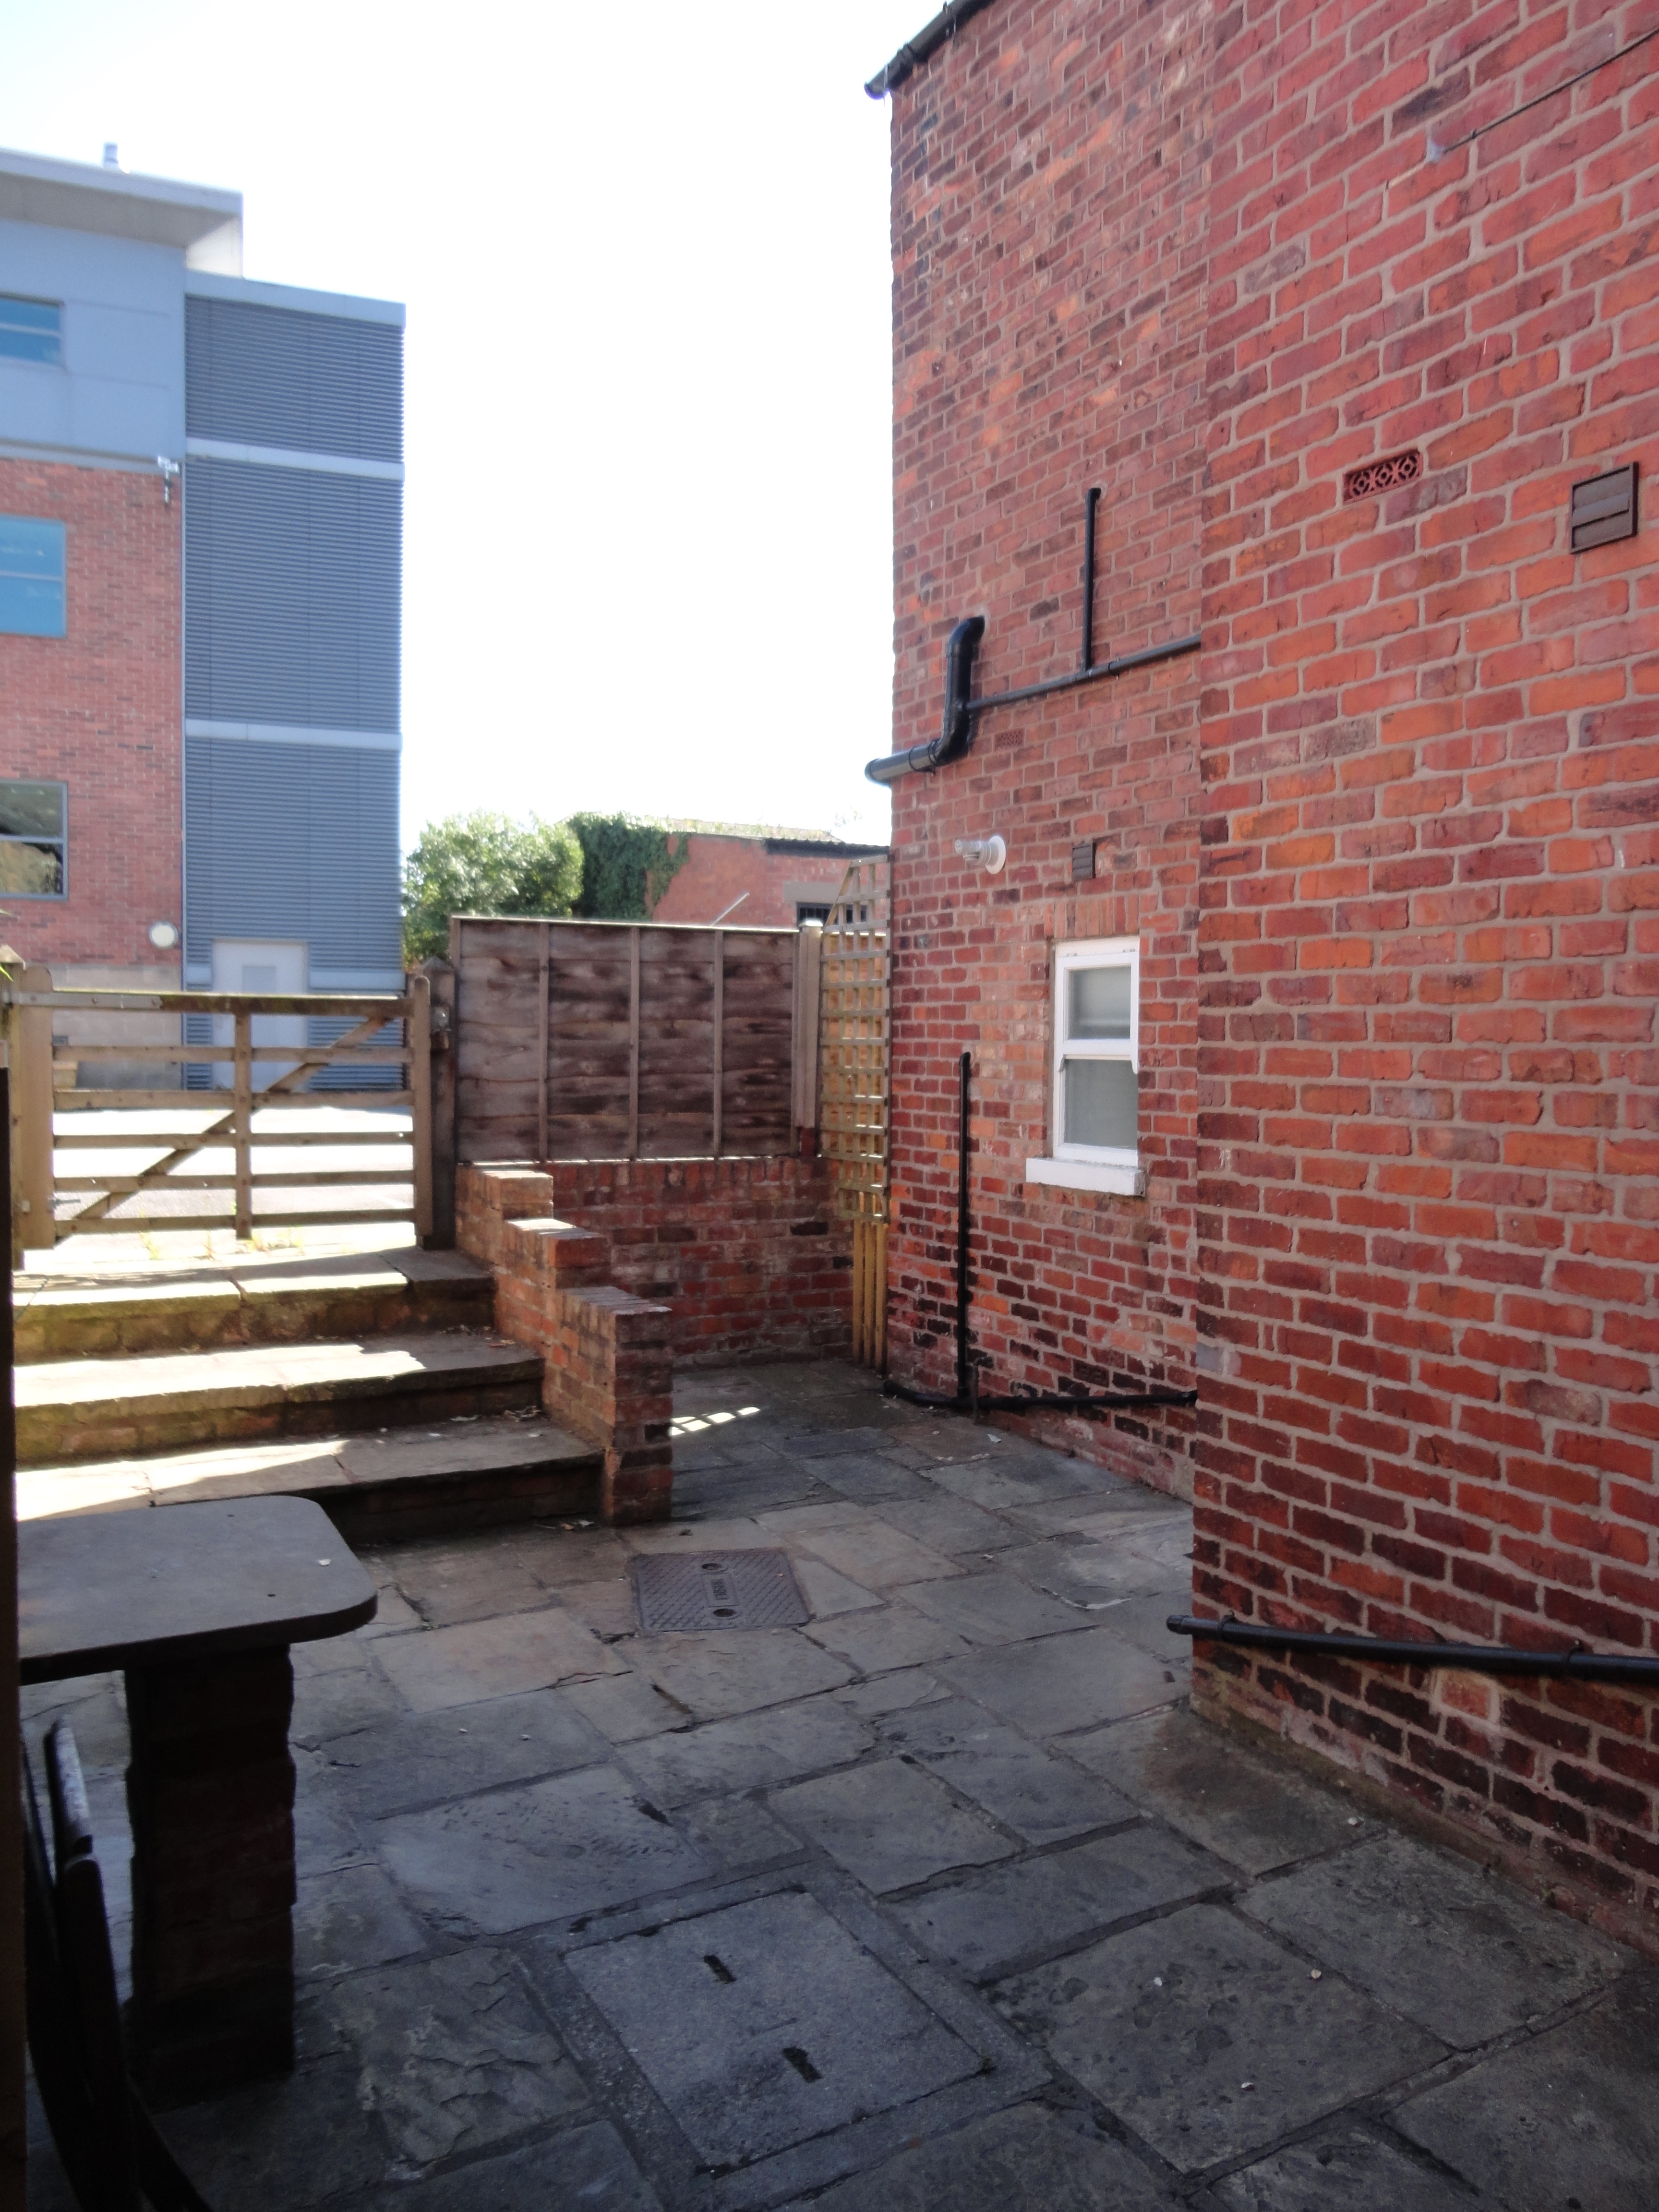 Super 6 Bed HMO Property For Sale